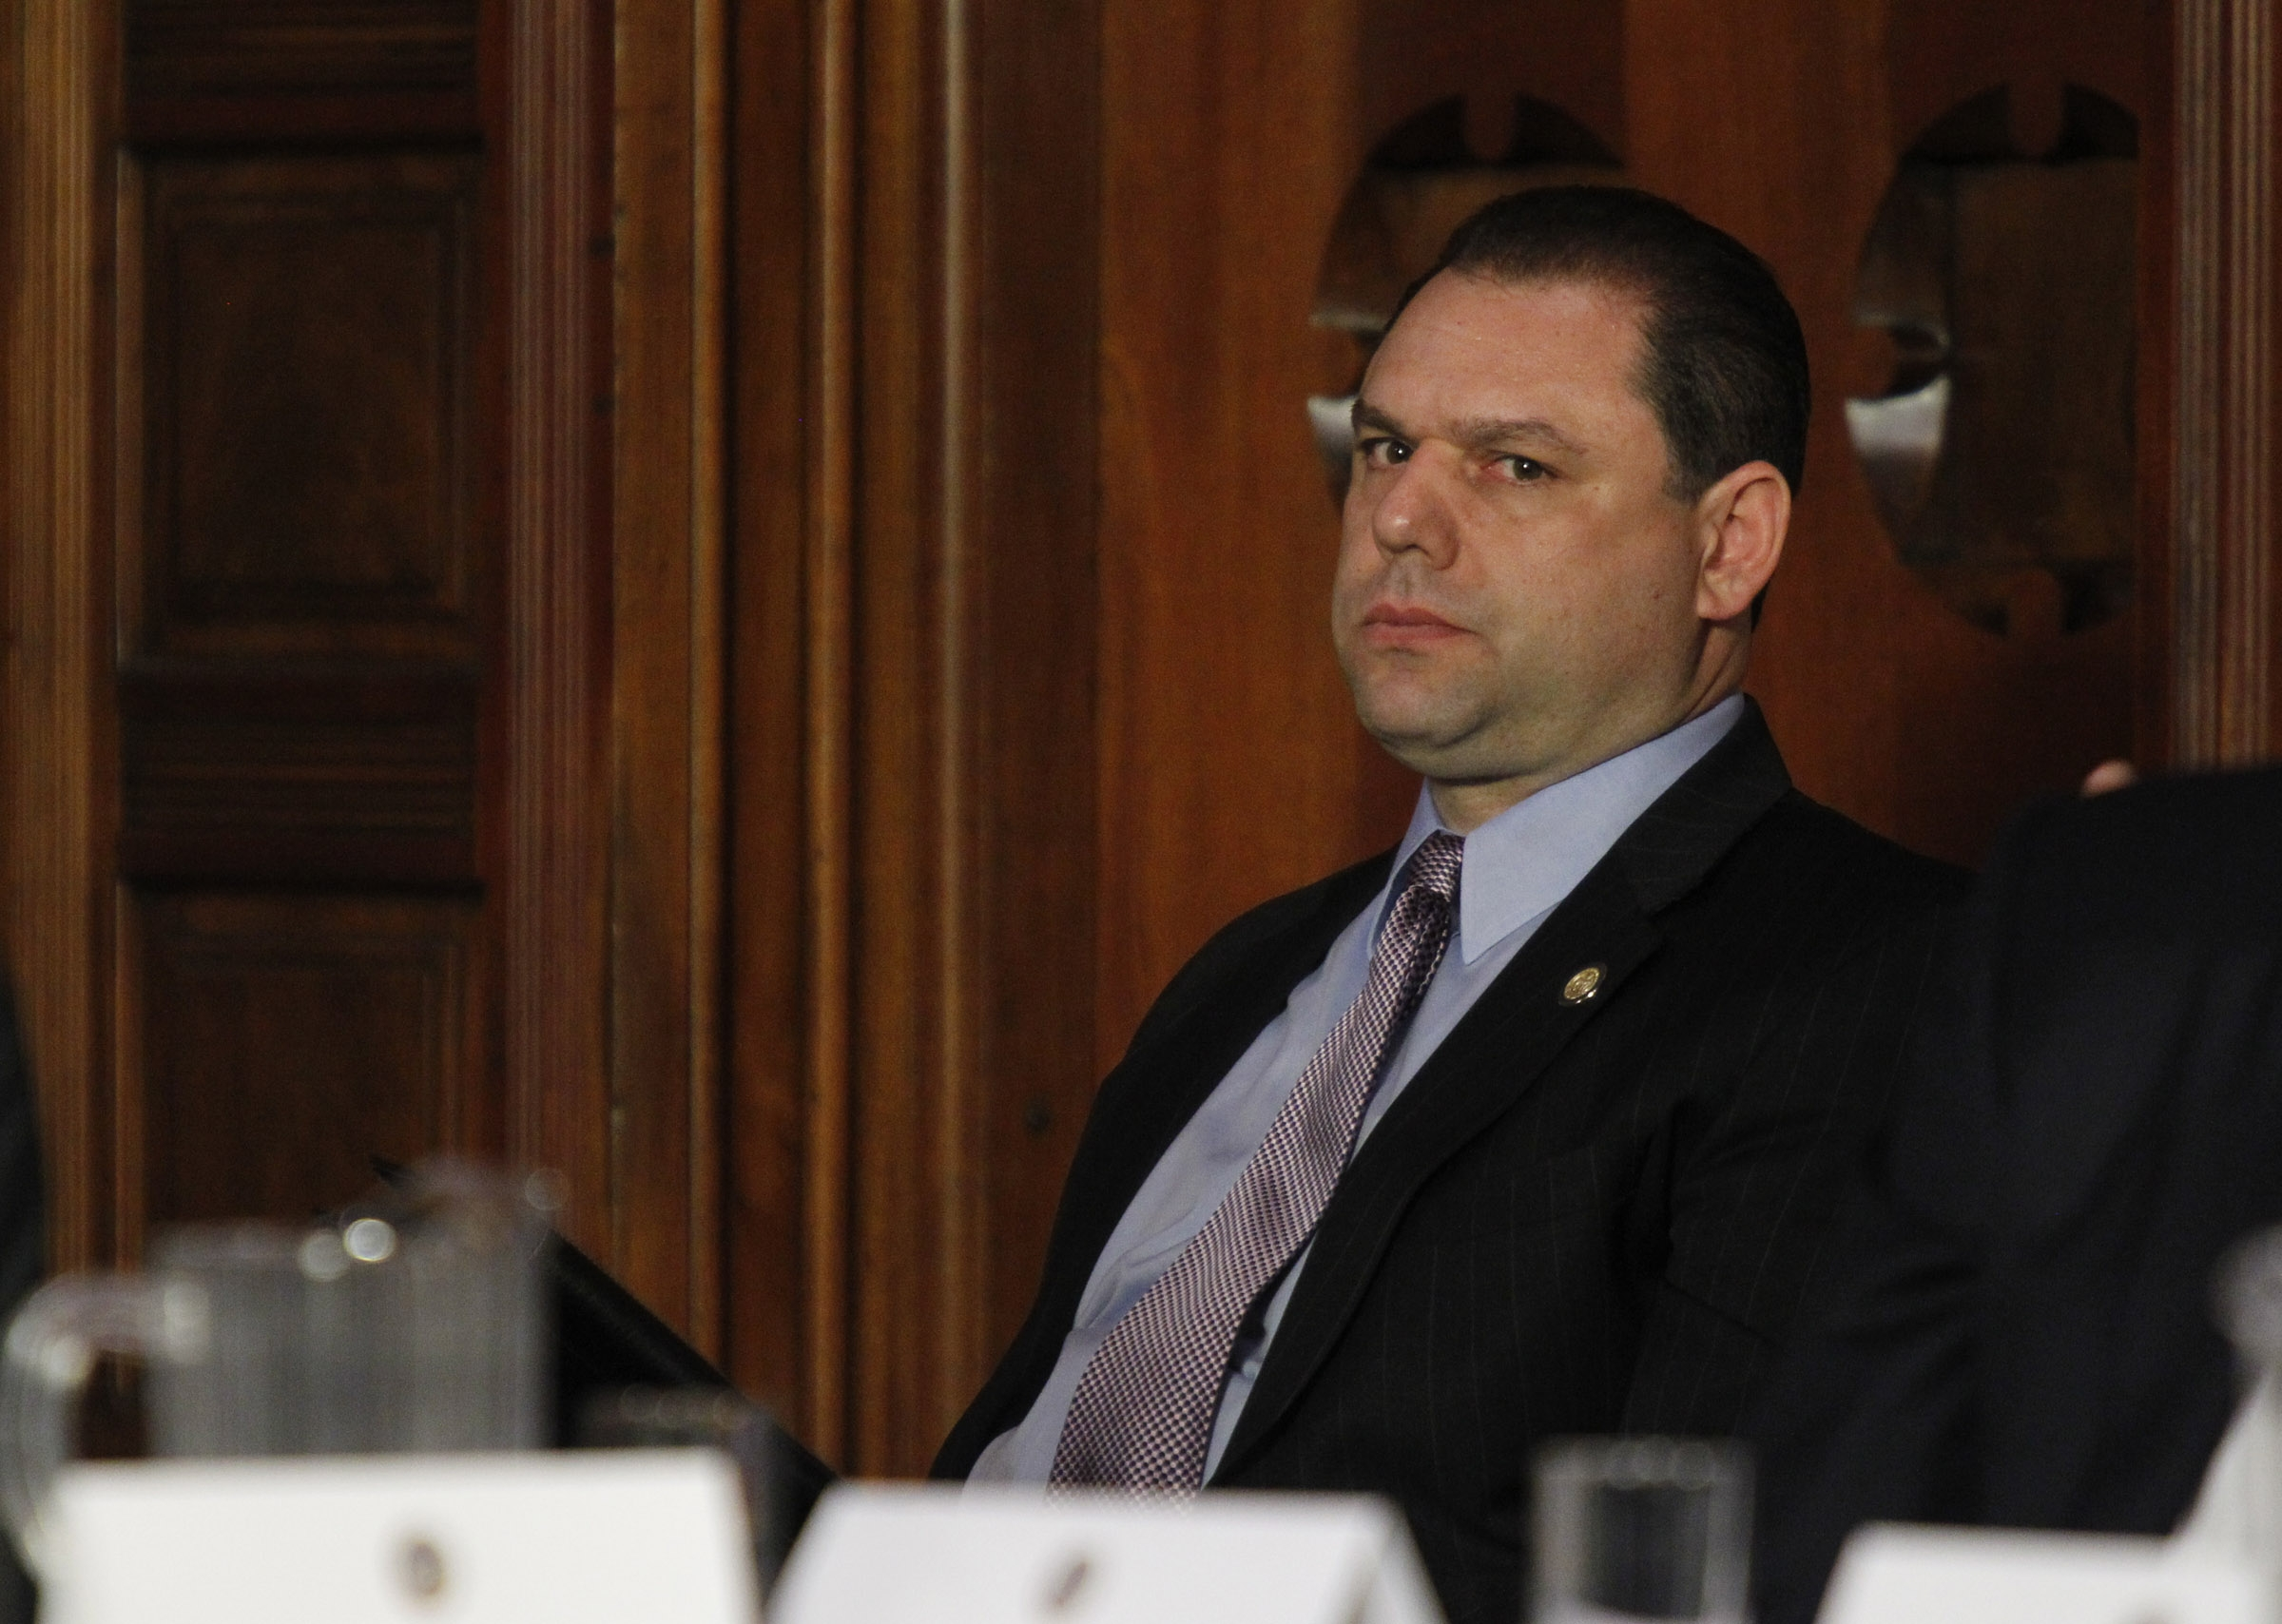 It is uncertain whether Joseph Percoco received the payments while he was working with the state or during a period when he was on leave that administration officials said at the time was to work on the governor's re-election campaign. (Buffalo News file photo)